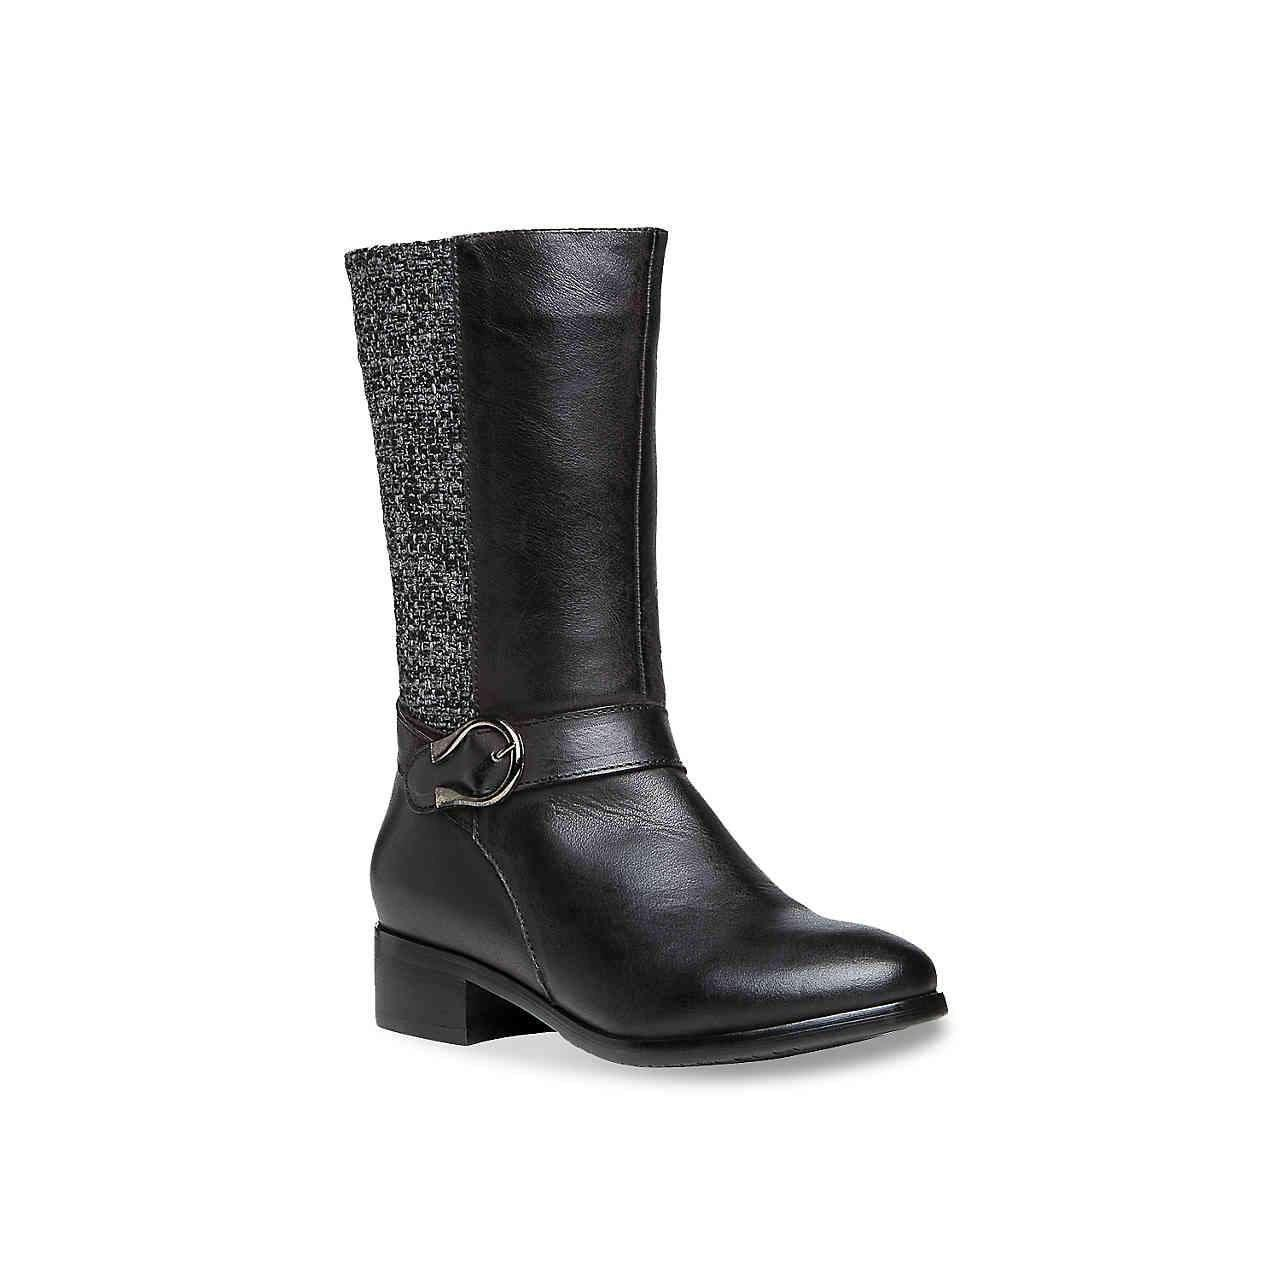 Propet Tessa Harness Boot Black Full Grain Leather  Propet  kick-it-shoe-outlet.myshopify.com Kick-it Shoe Outlet Shoes Cheap